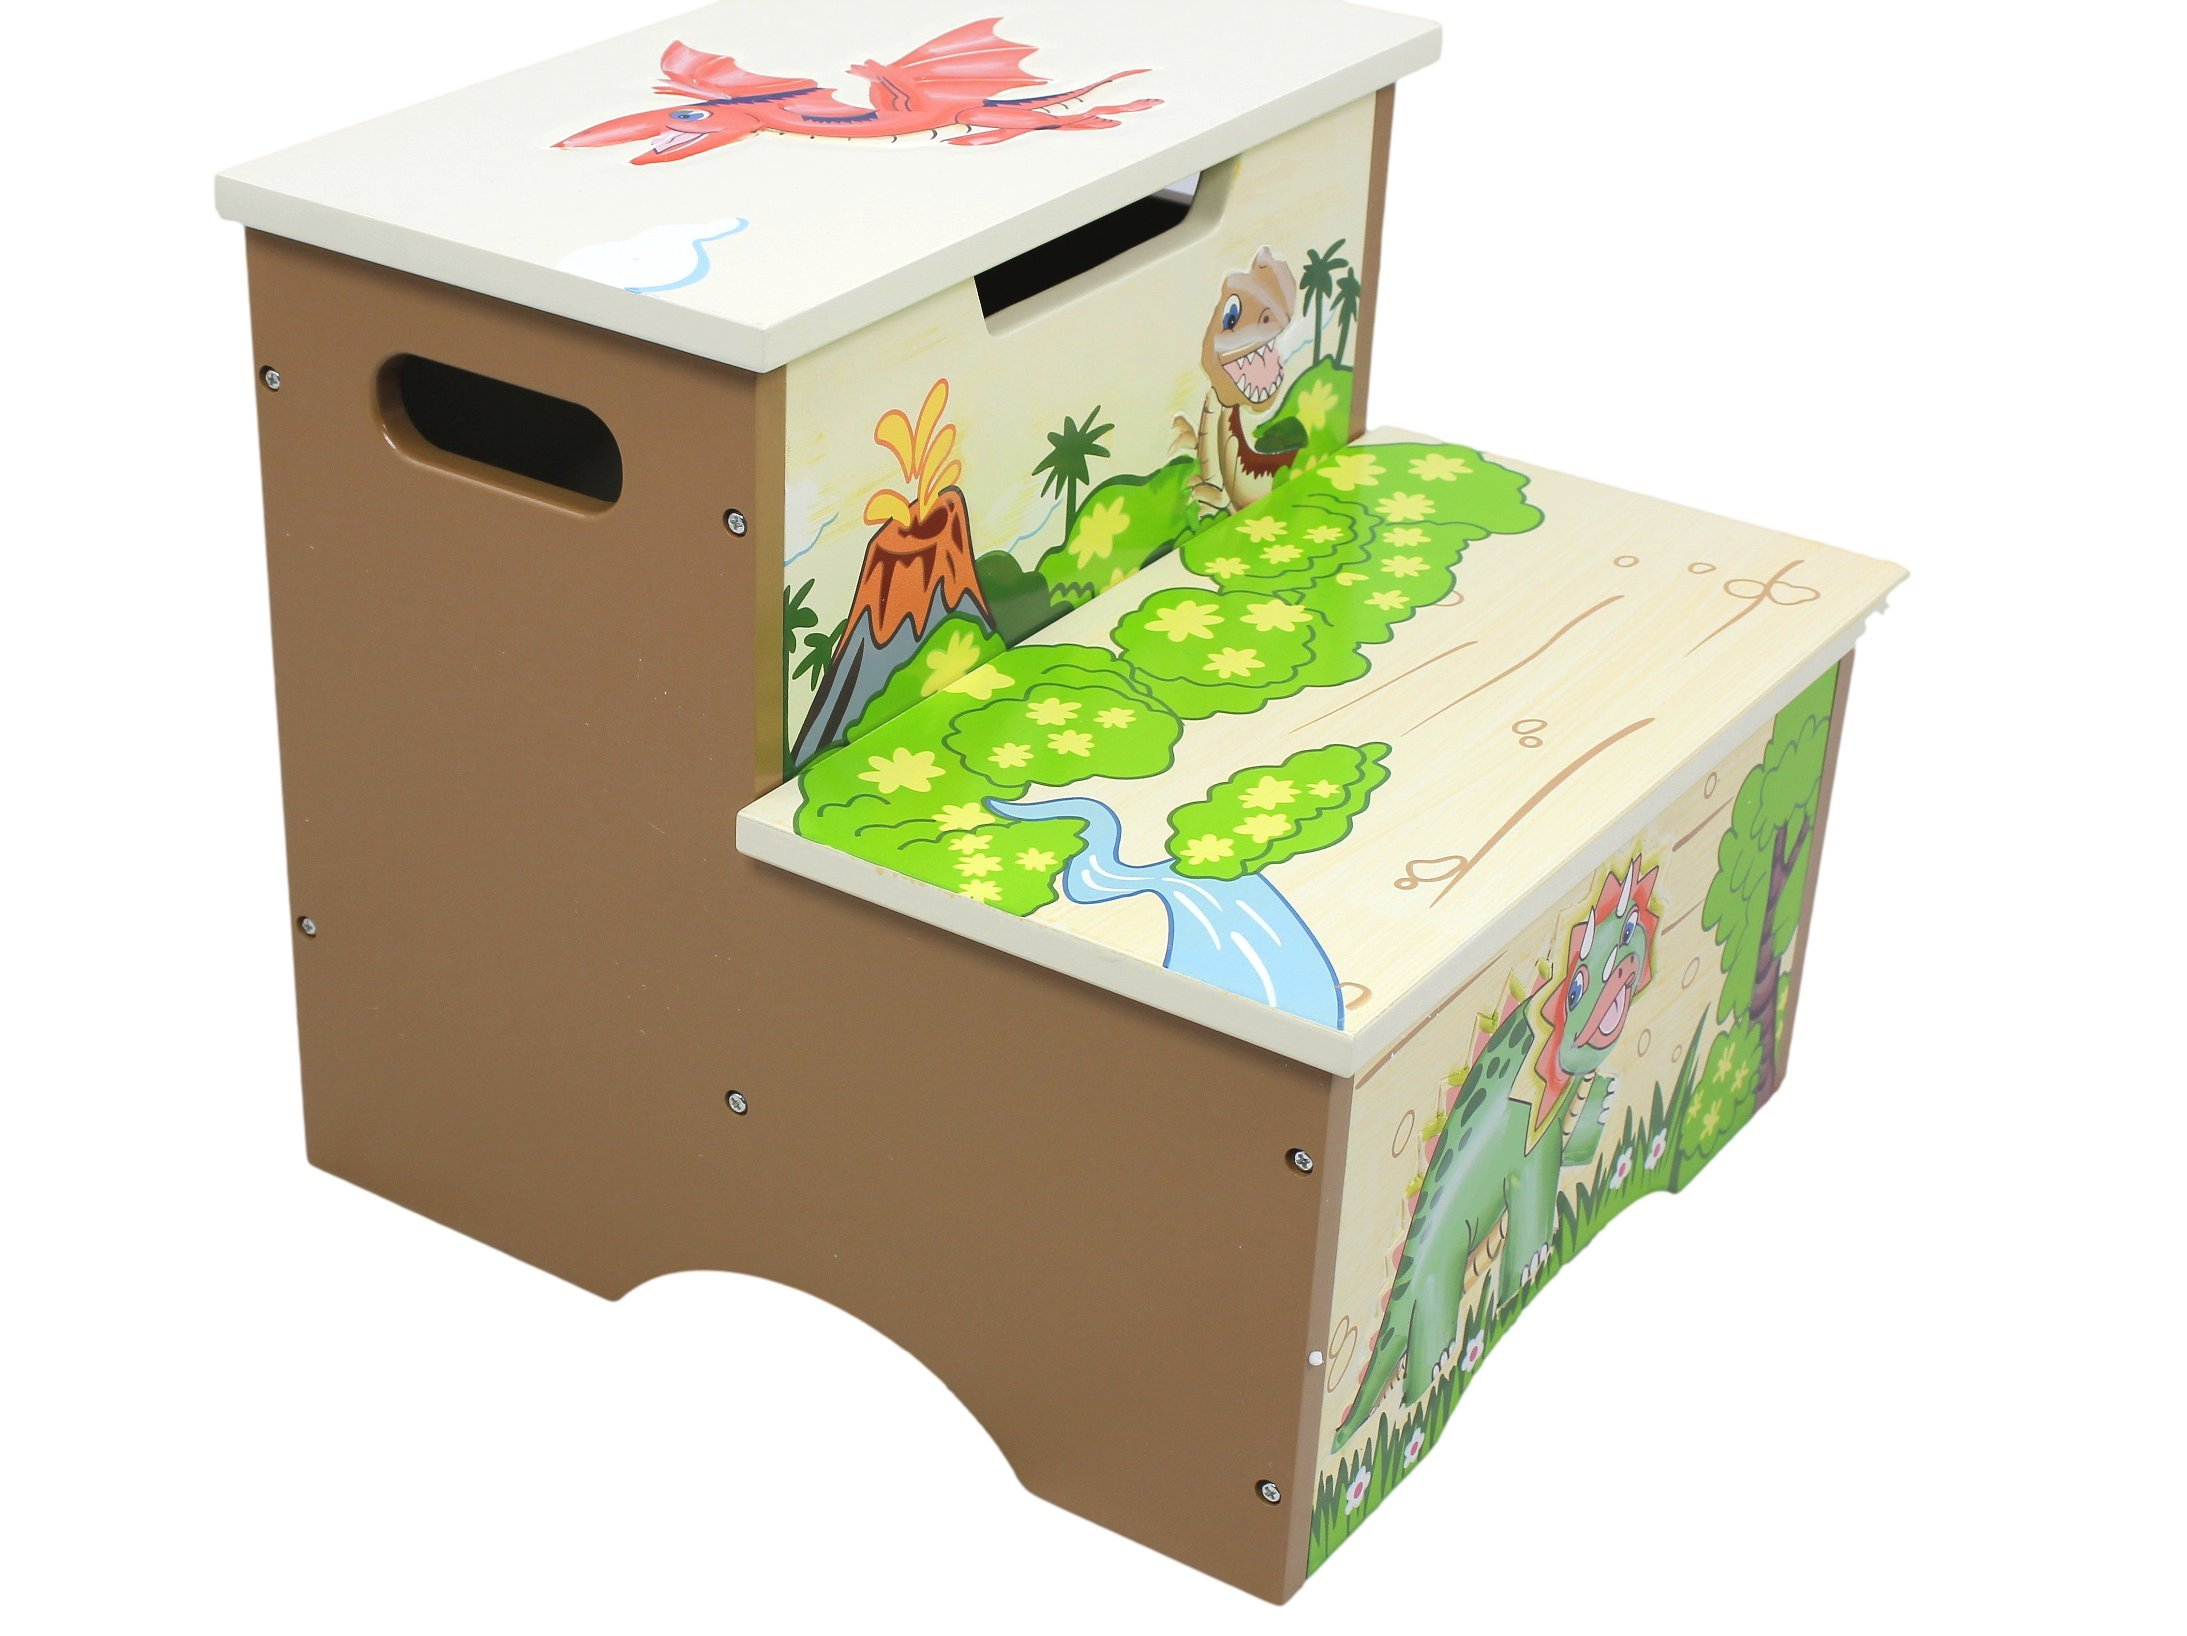 Teamson Kids Wooden Step Stool with Storage Dinosaur Kingdom Room Collection  sc 1 st  FurnitureNDecor.com & Teamson Kids Wooden Step Stool with Storage - Dinosaur Kingdom ... islam-shia.org